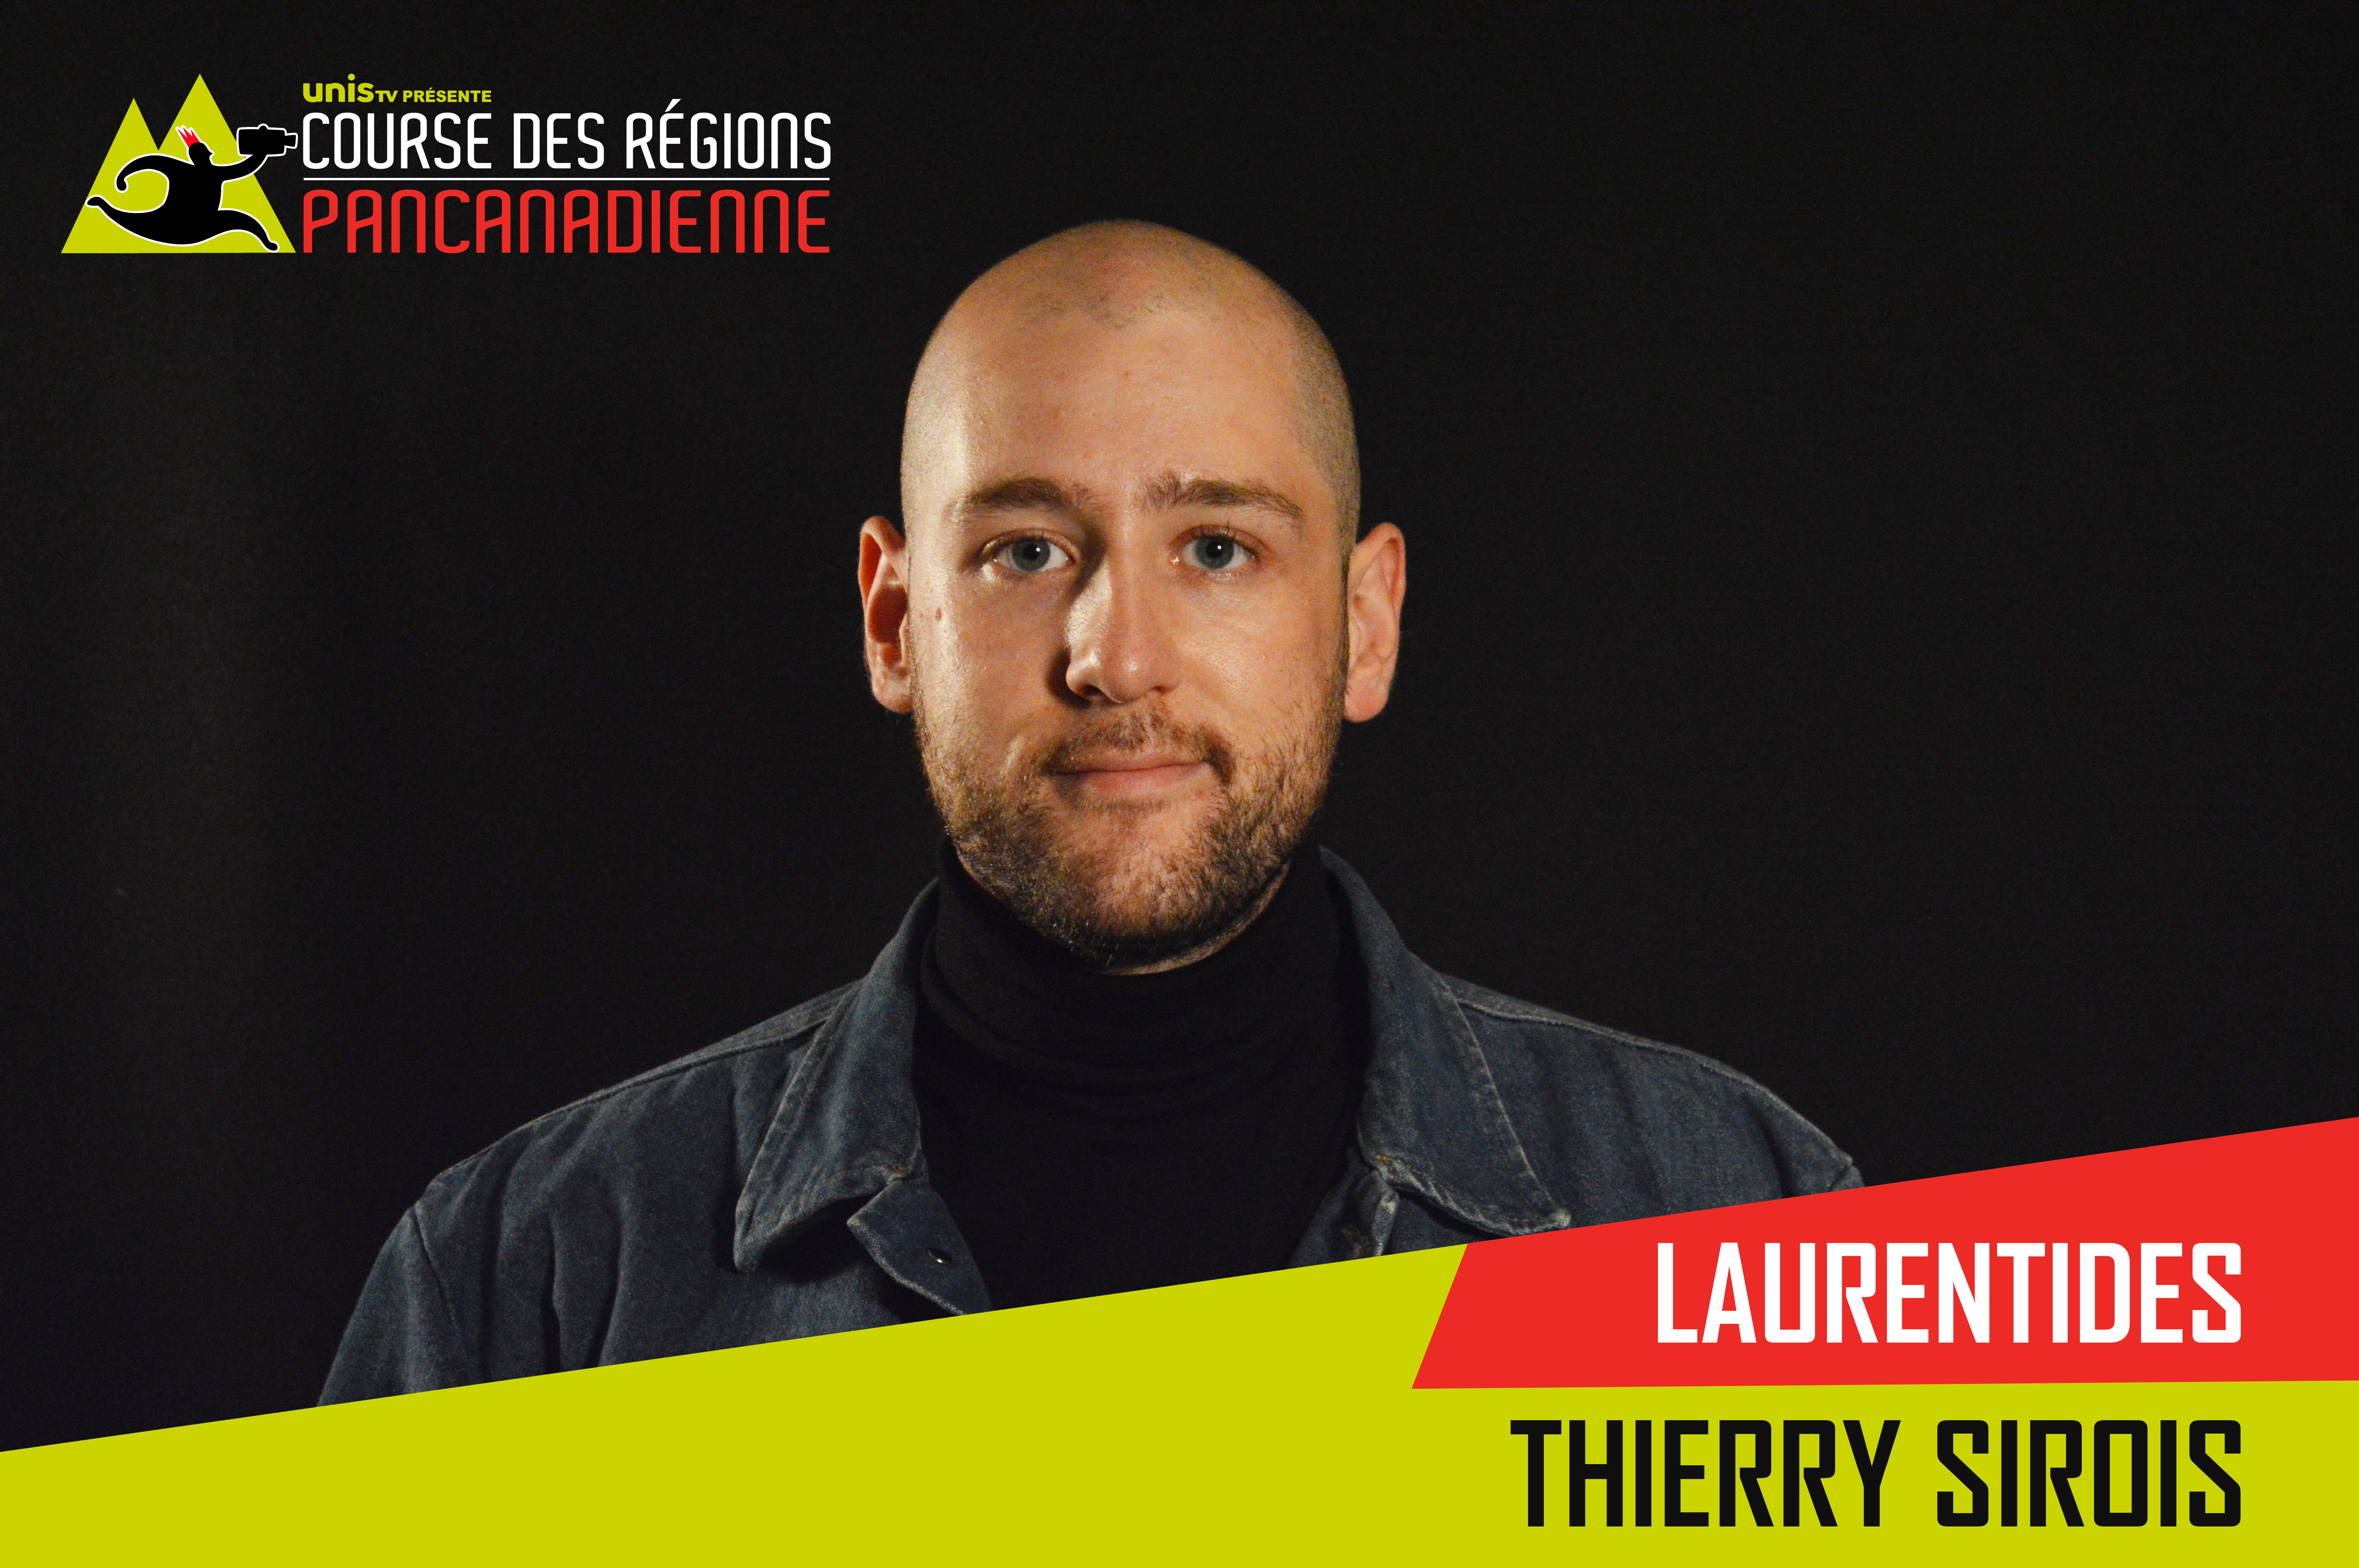 1. Thierry Sirois